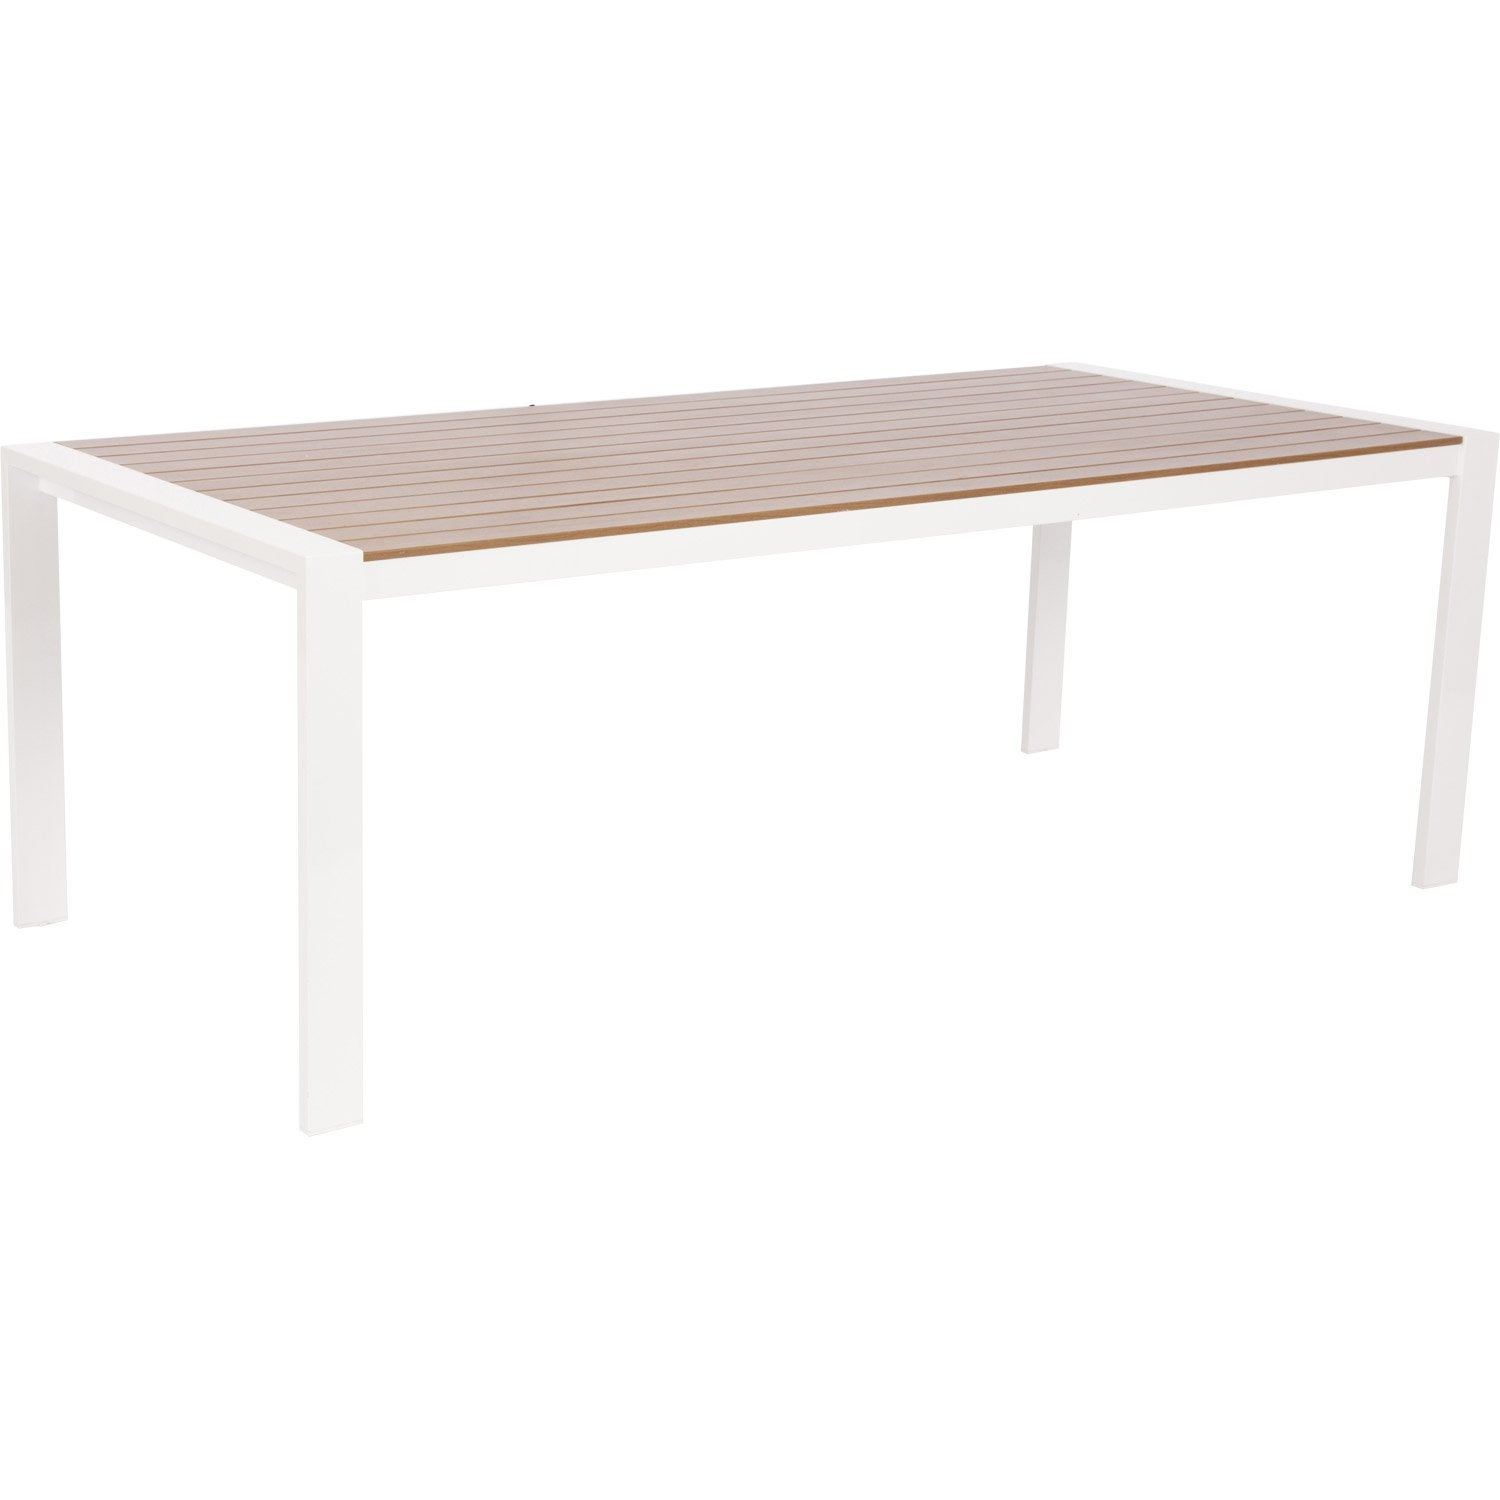 Table de jardin port nelson rectangulaire blanc for Table de jardin 8 personnes